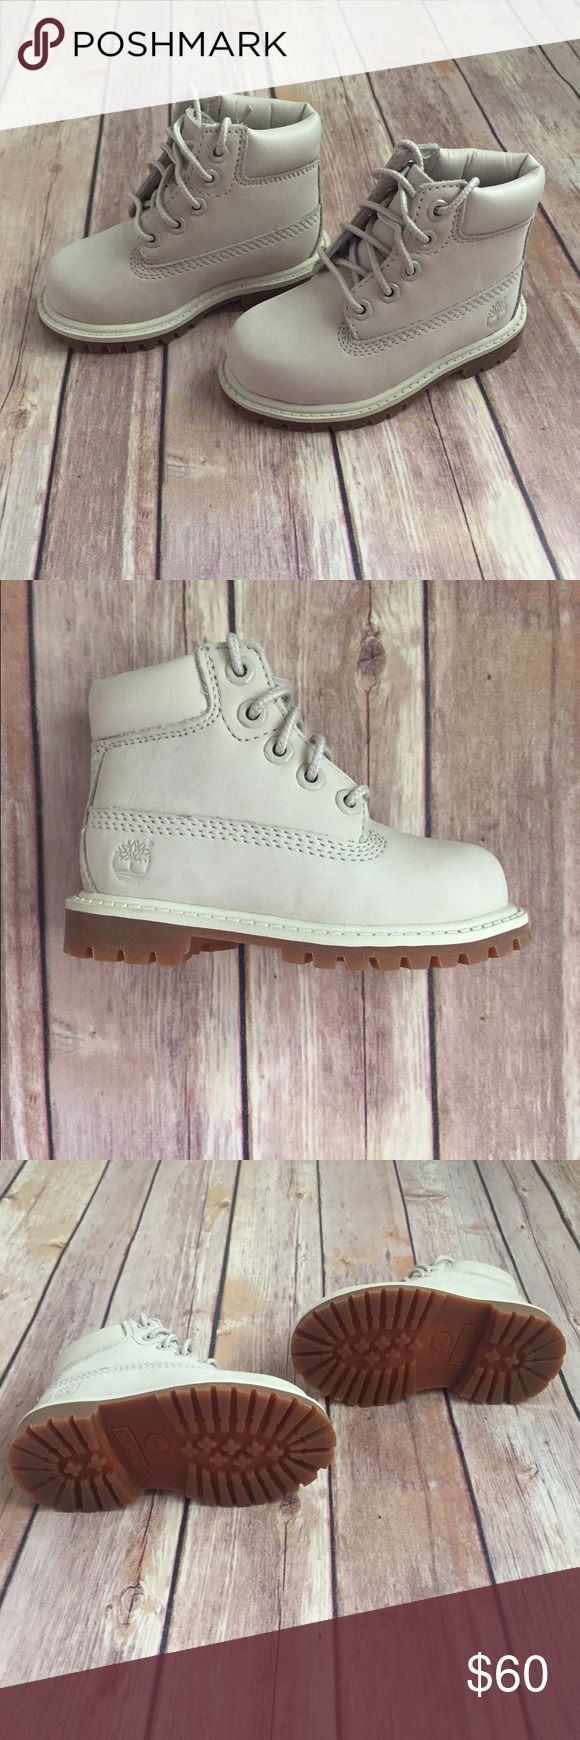 Timberland Boots Toddler size. Cream/gray color. Gender neutral. No box. Never worn. Open to offers, price won't be negotiated in comments. Timberland Shoes Boots